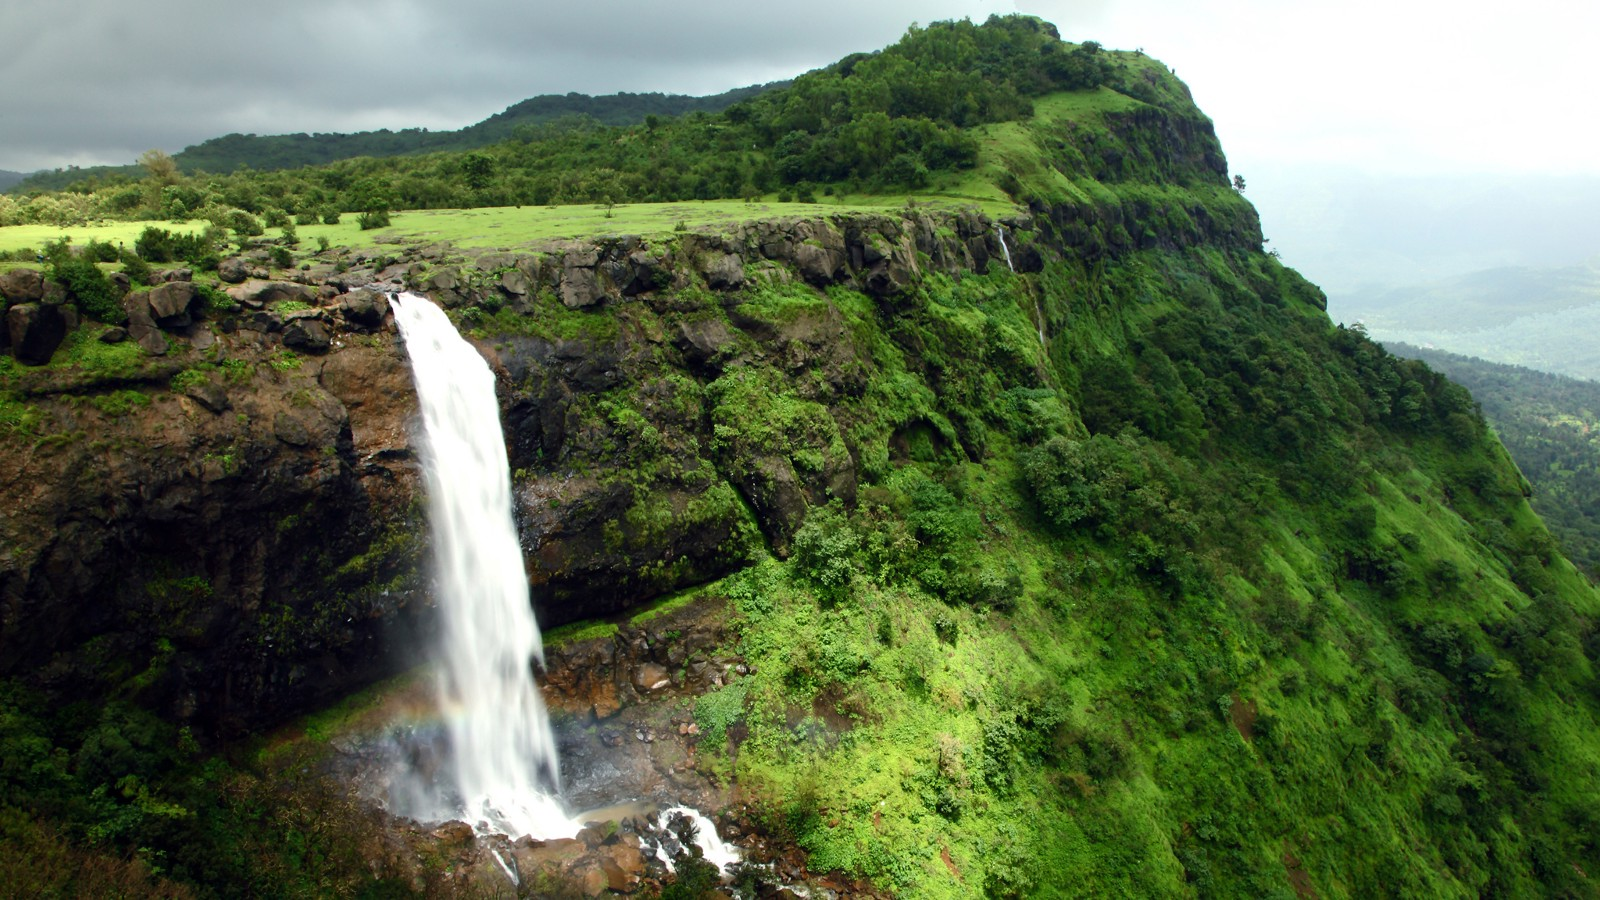 Madhe Ghat Waterfall near Pune, India